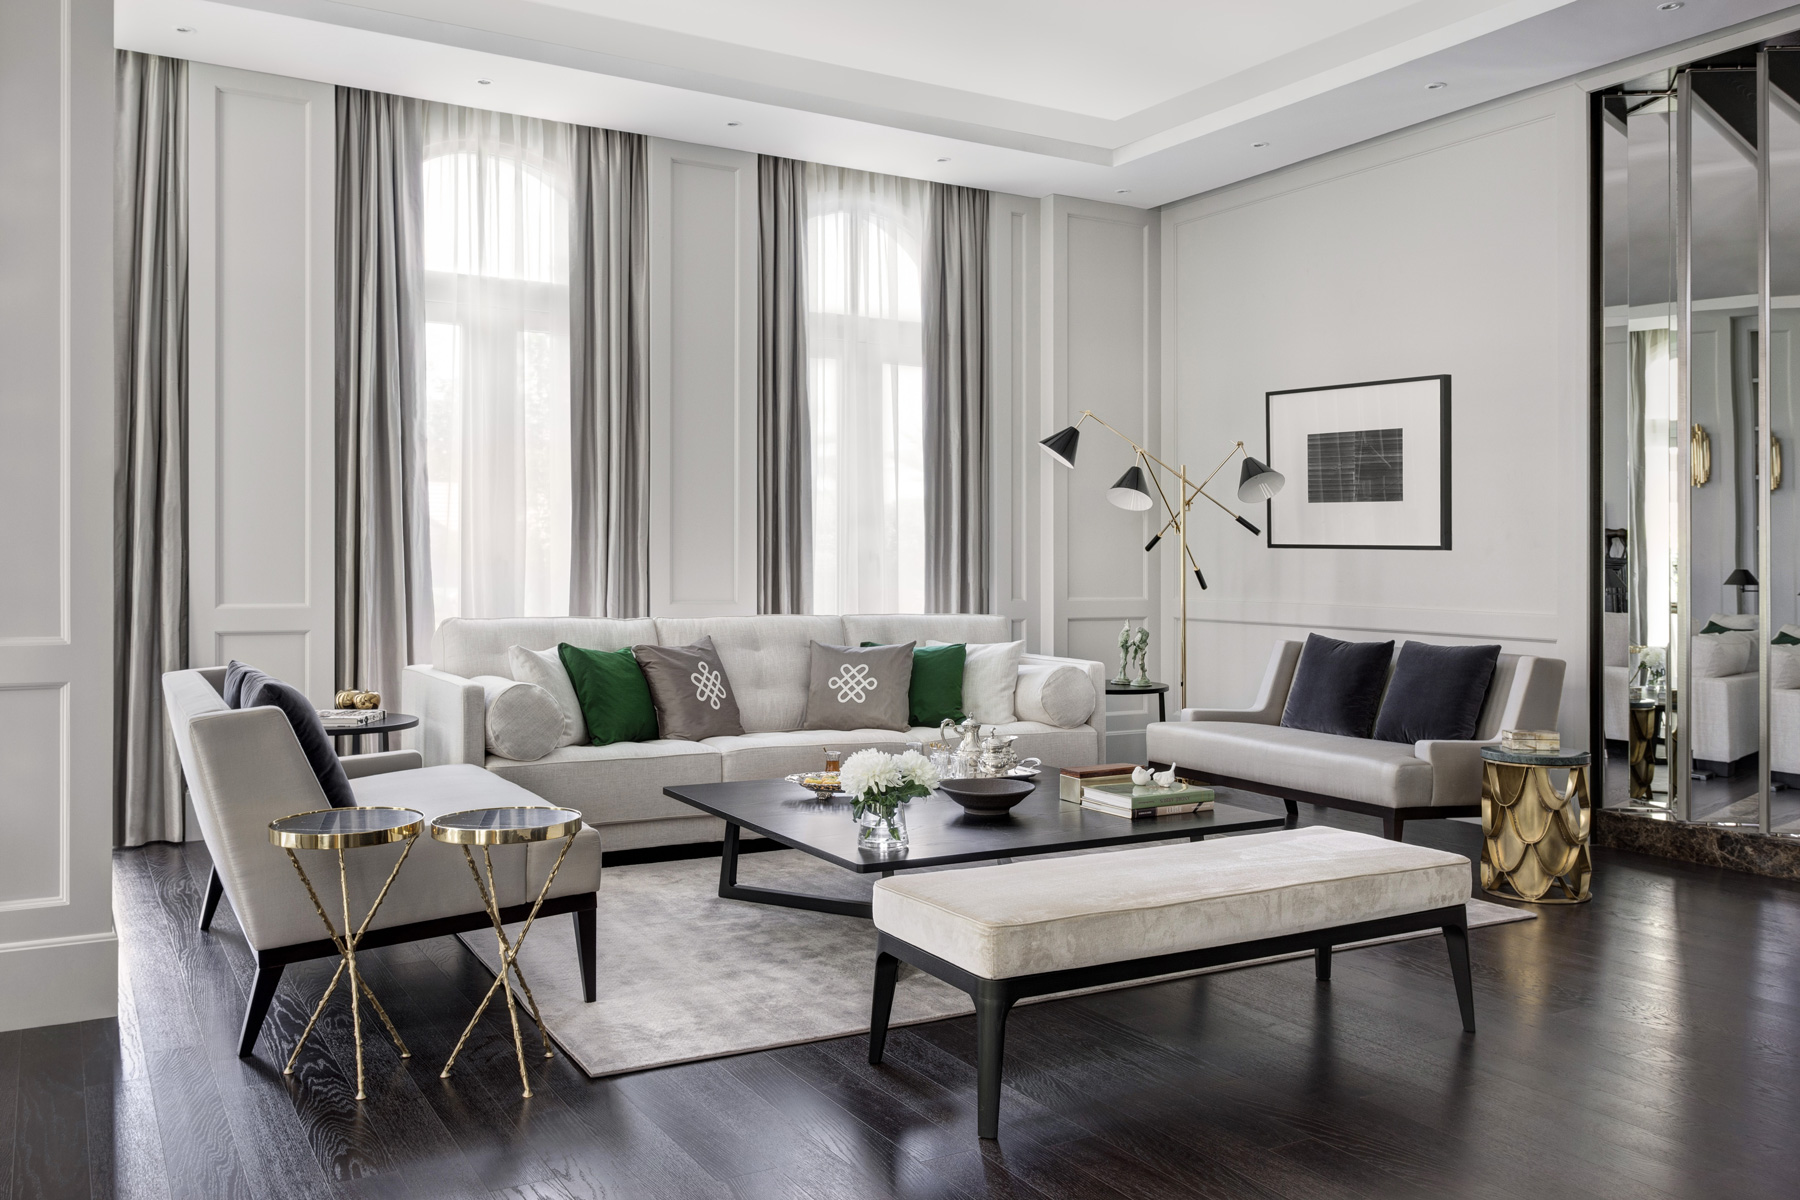 American Classic Living Room Design Room Of The Week Neutral Luxury Living Room In Dubai